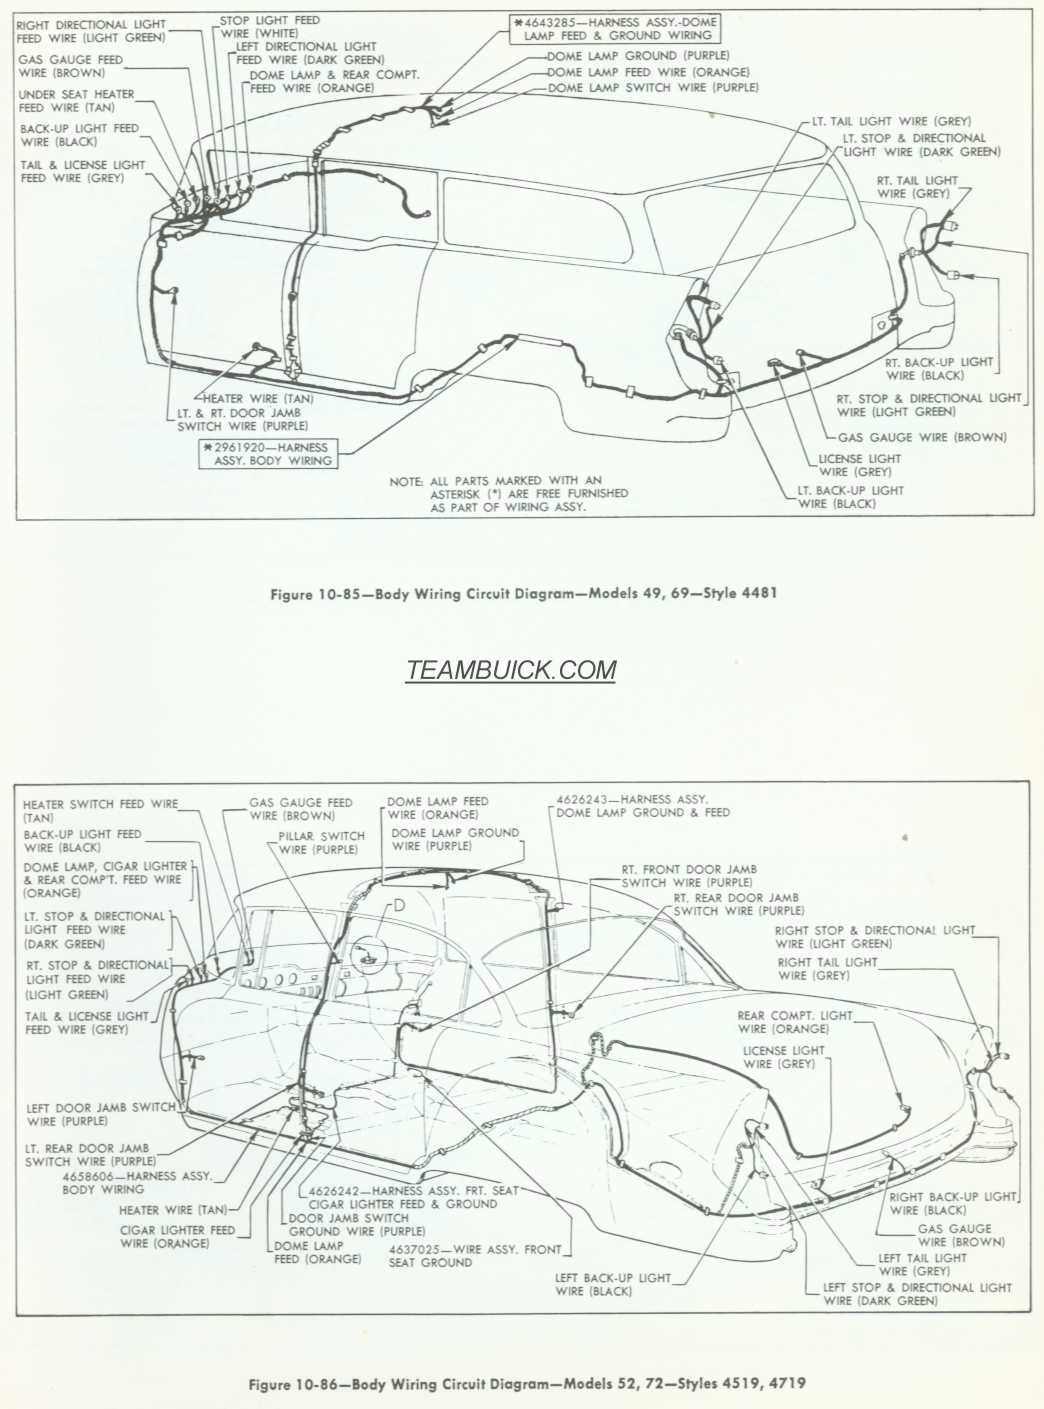 Buick Body Wiring Diagrams Model 46 69 52 72